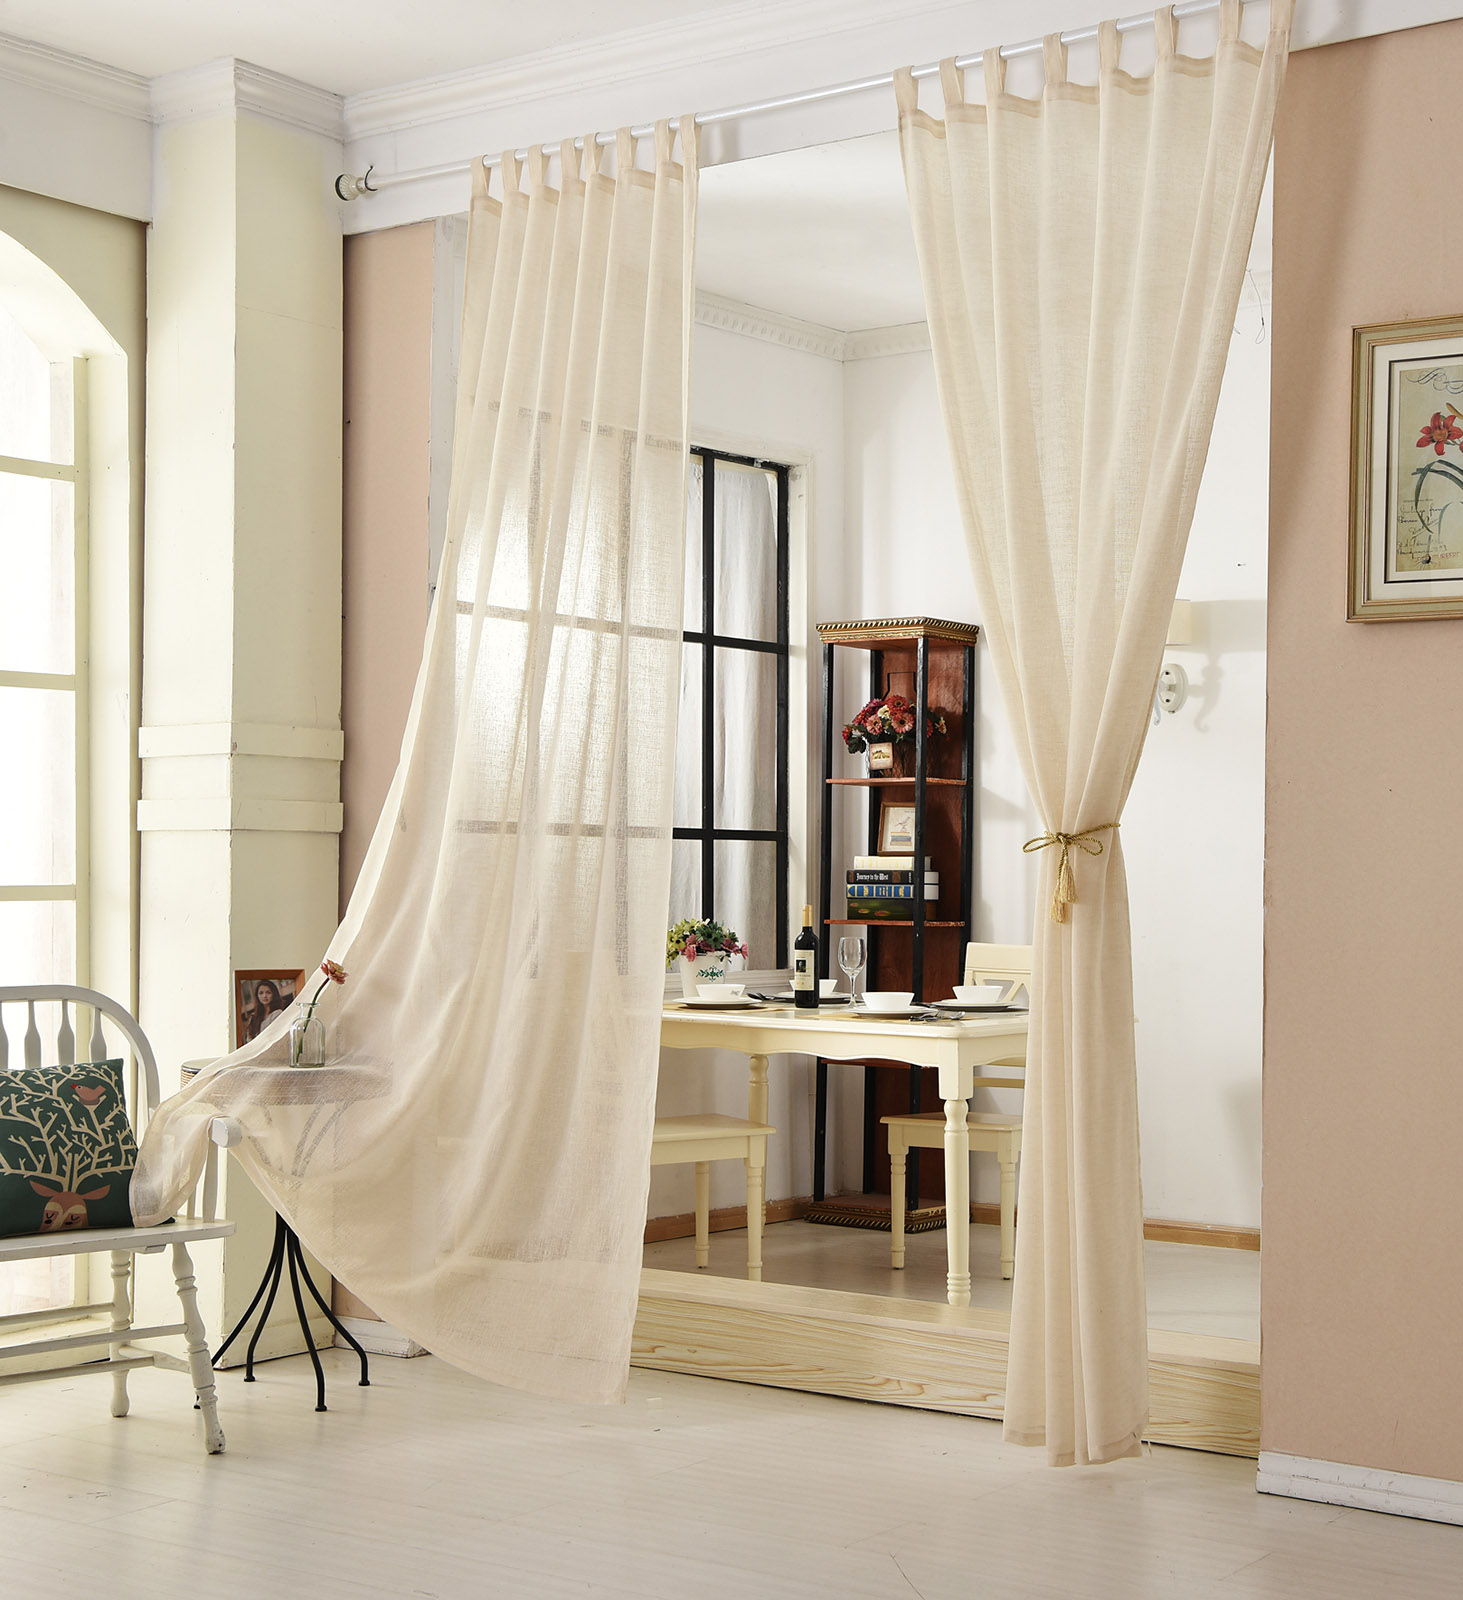 gardinen stores transparent leinen optik schlaufenschal vorhang schal voile 632 ebay. Black Bedroom Furniture Sets. Home Design Ideas